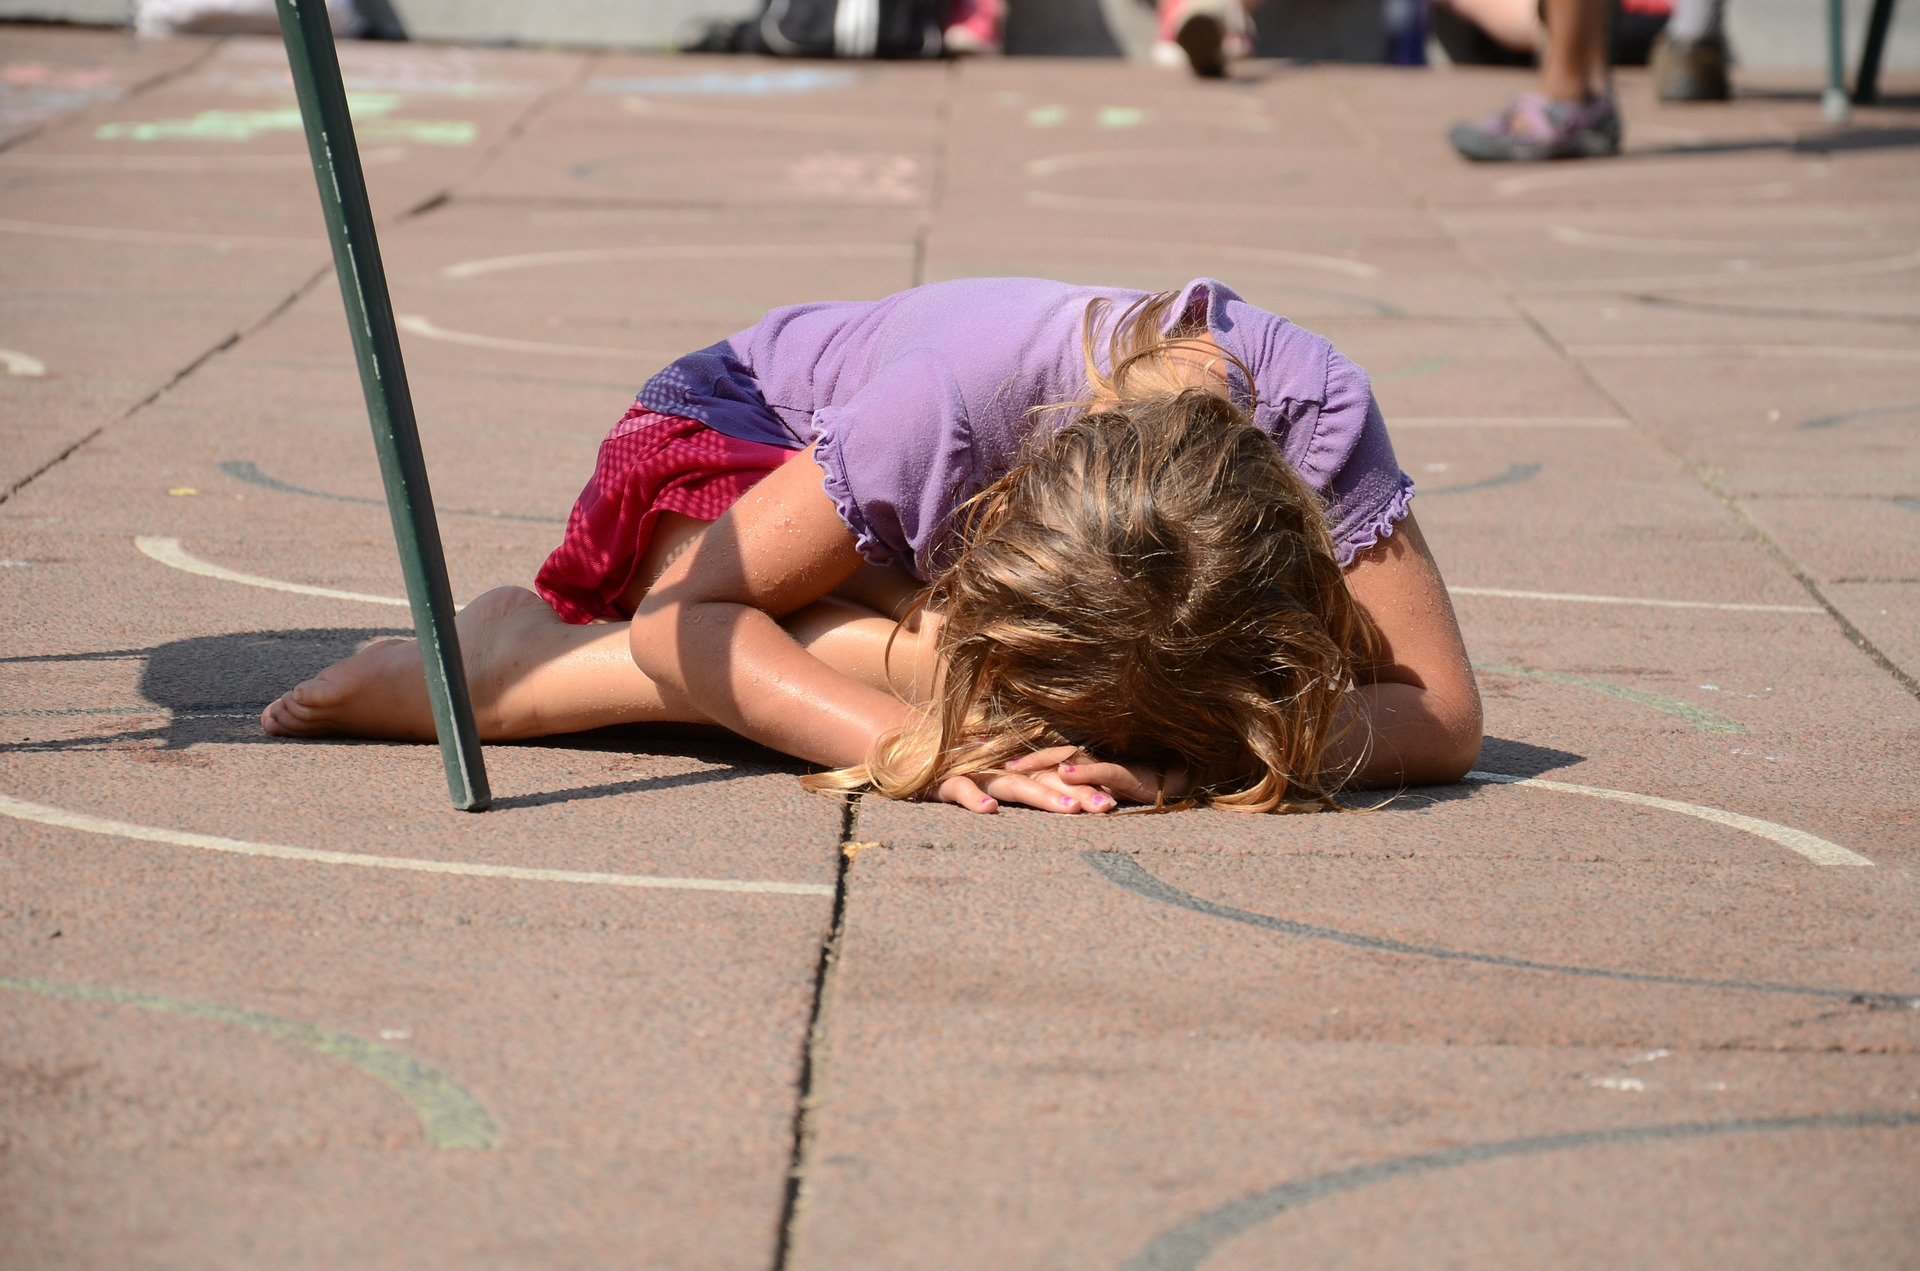 image of girl laying on the floor unhappy